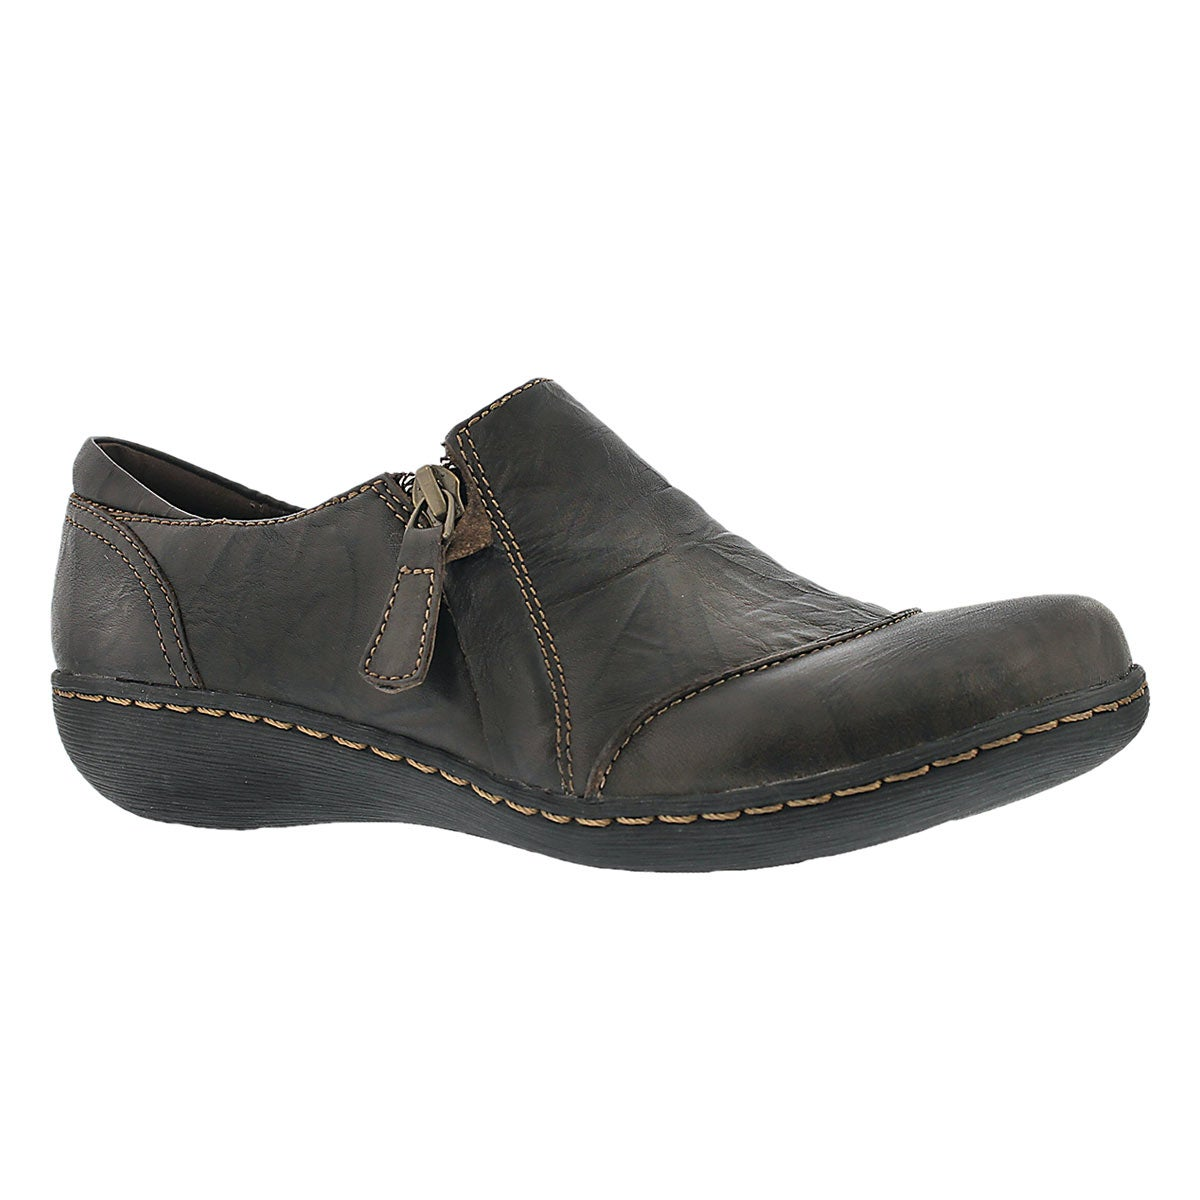 Lds Fianna Cleo brown casual shoe